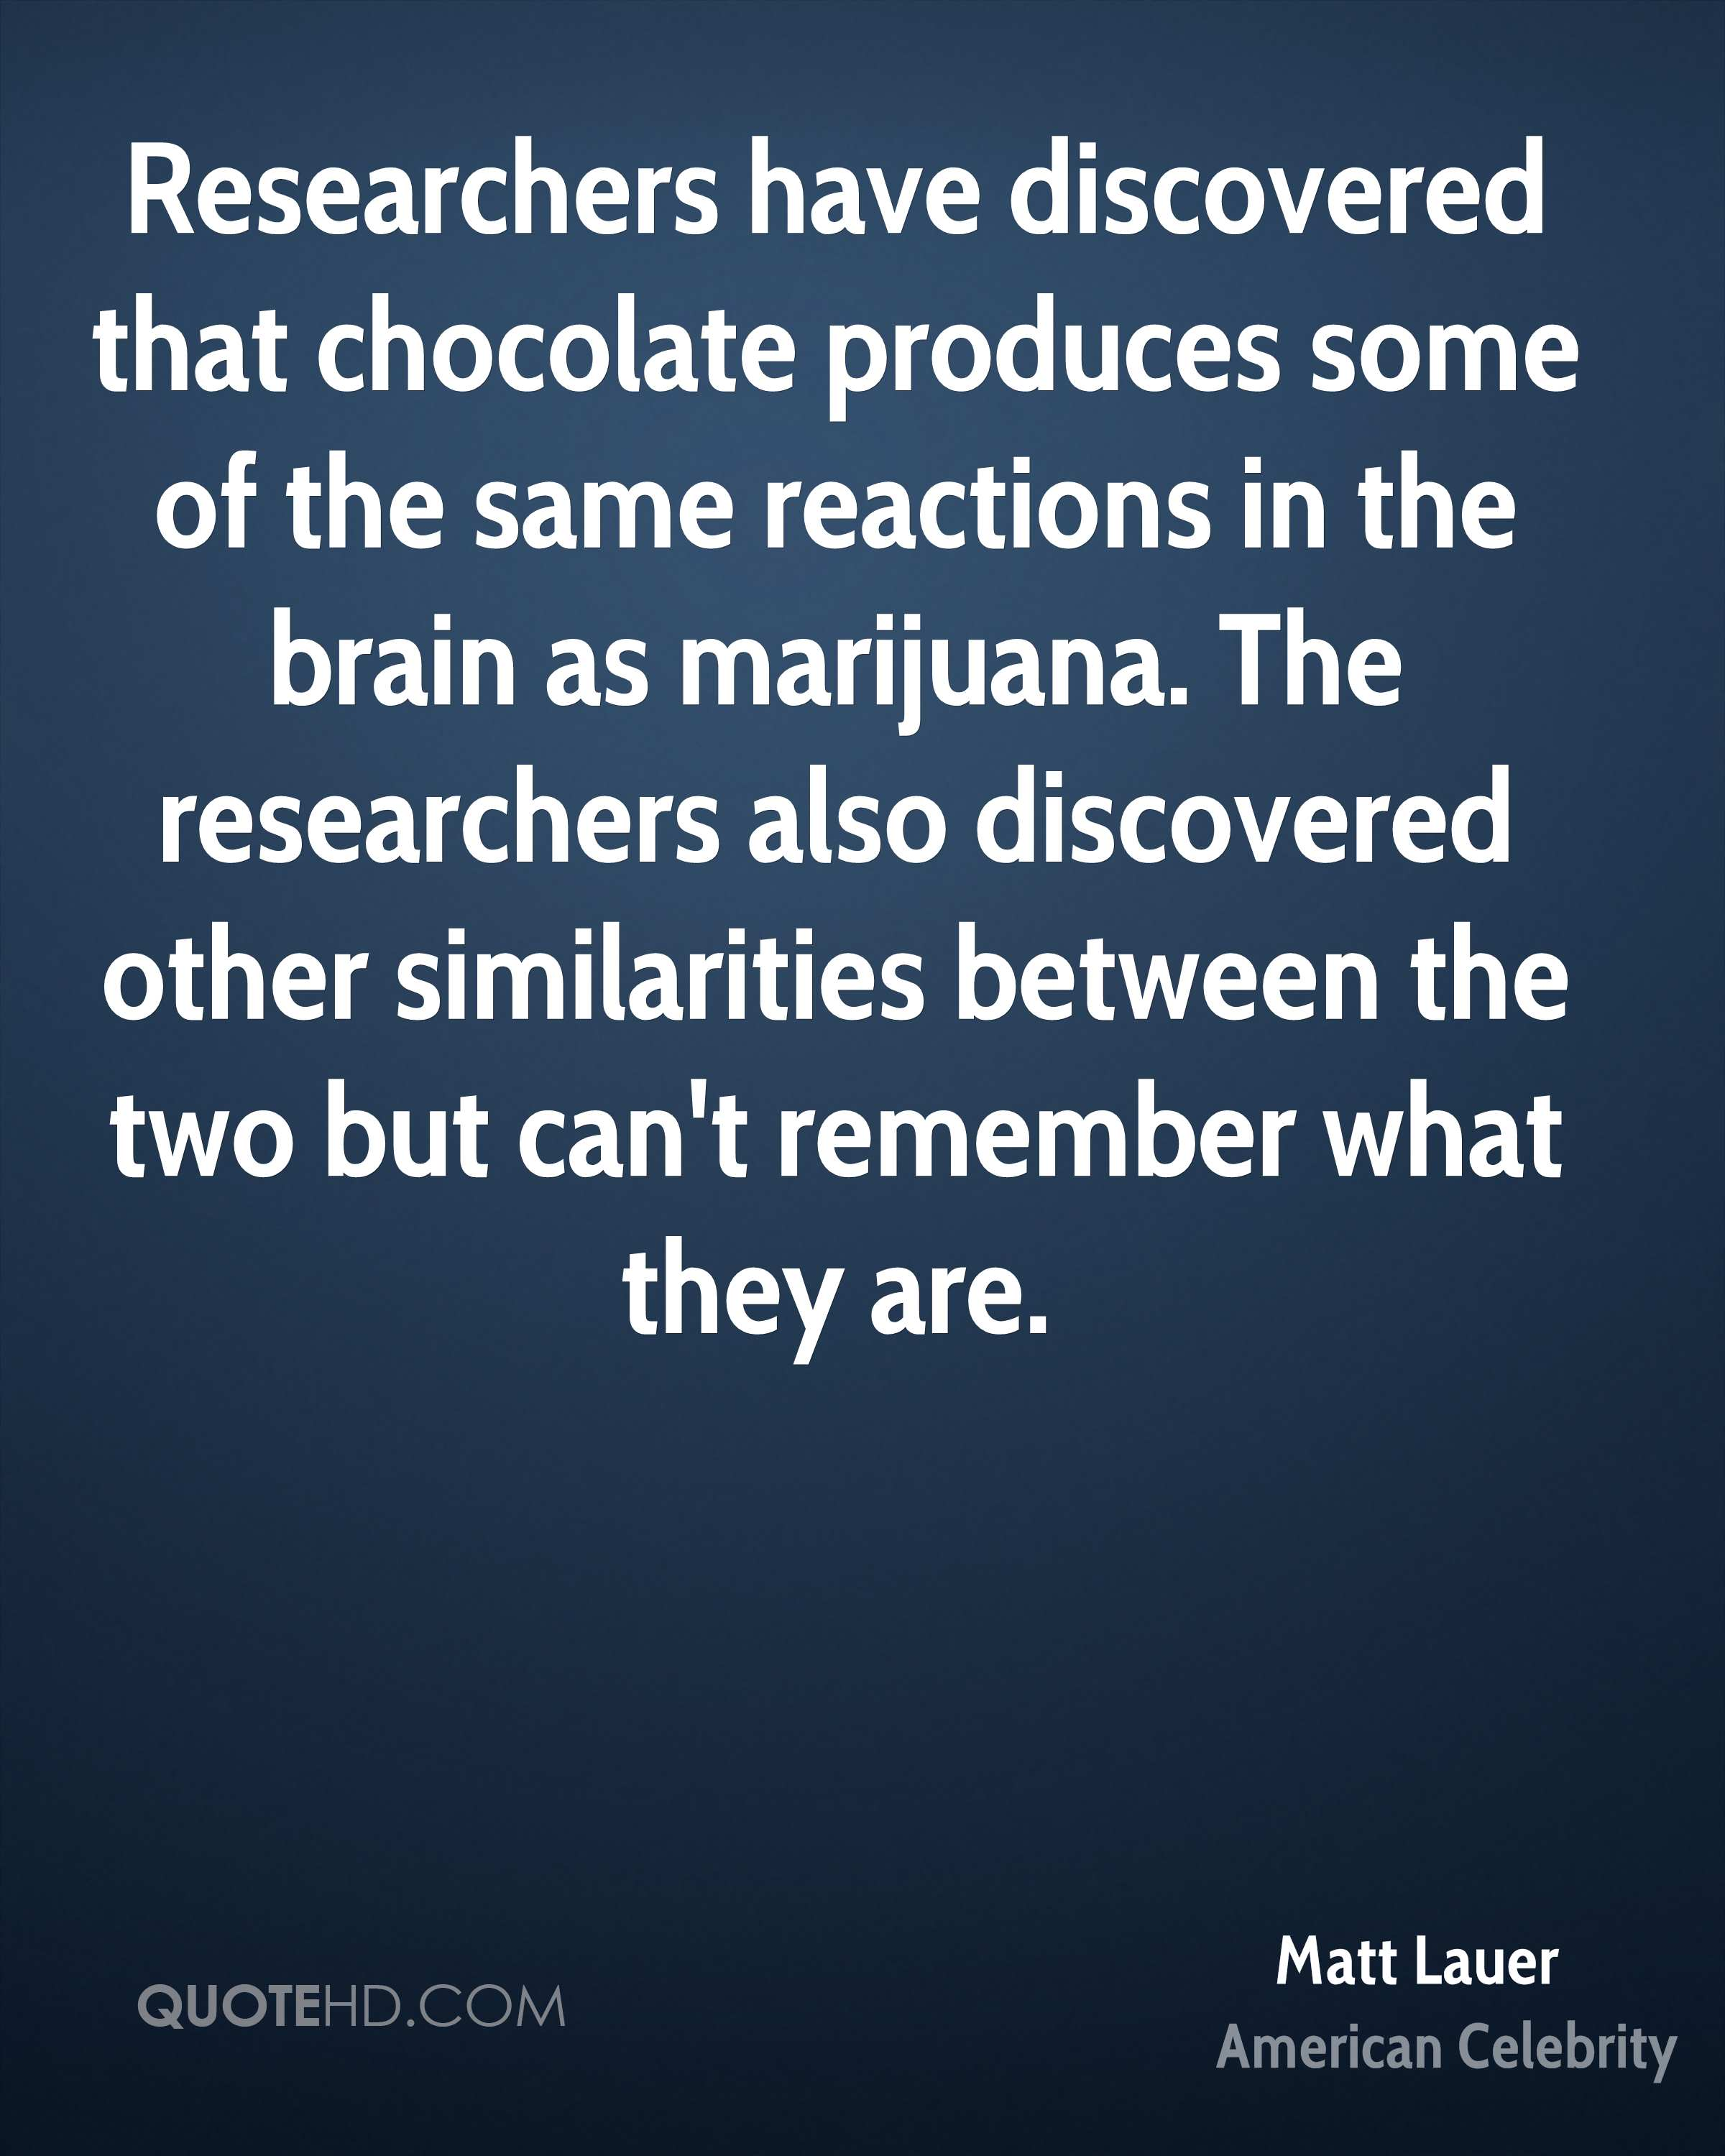 Researchers have discovered that chocolate produces some of the same reactions in the brain as marijuana. The researchers also discovered other similarities between the two but can't remember what they are.